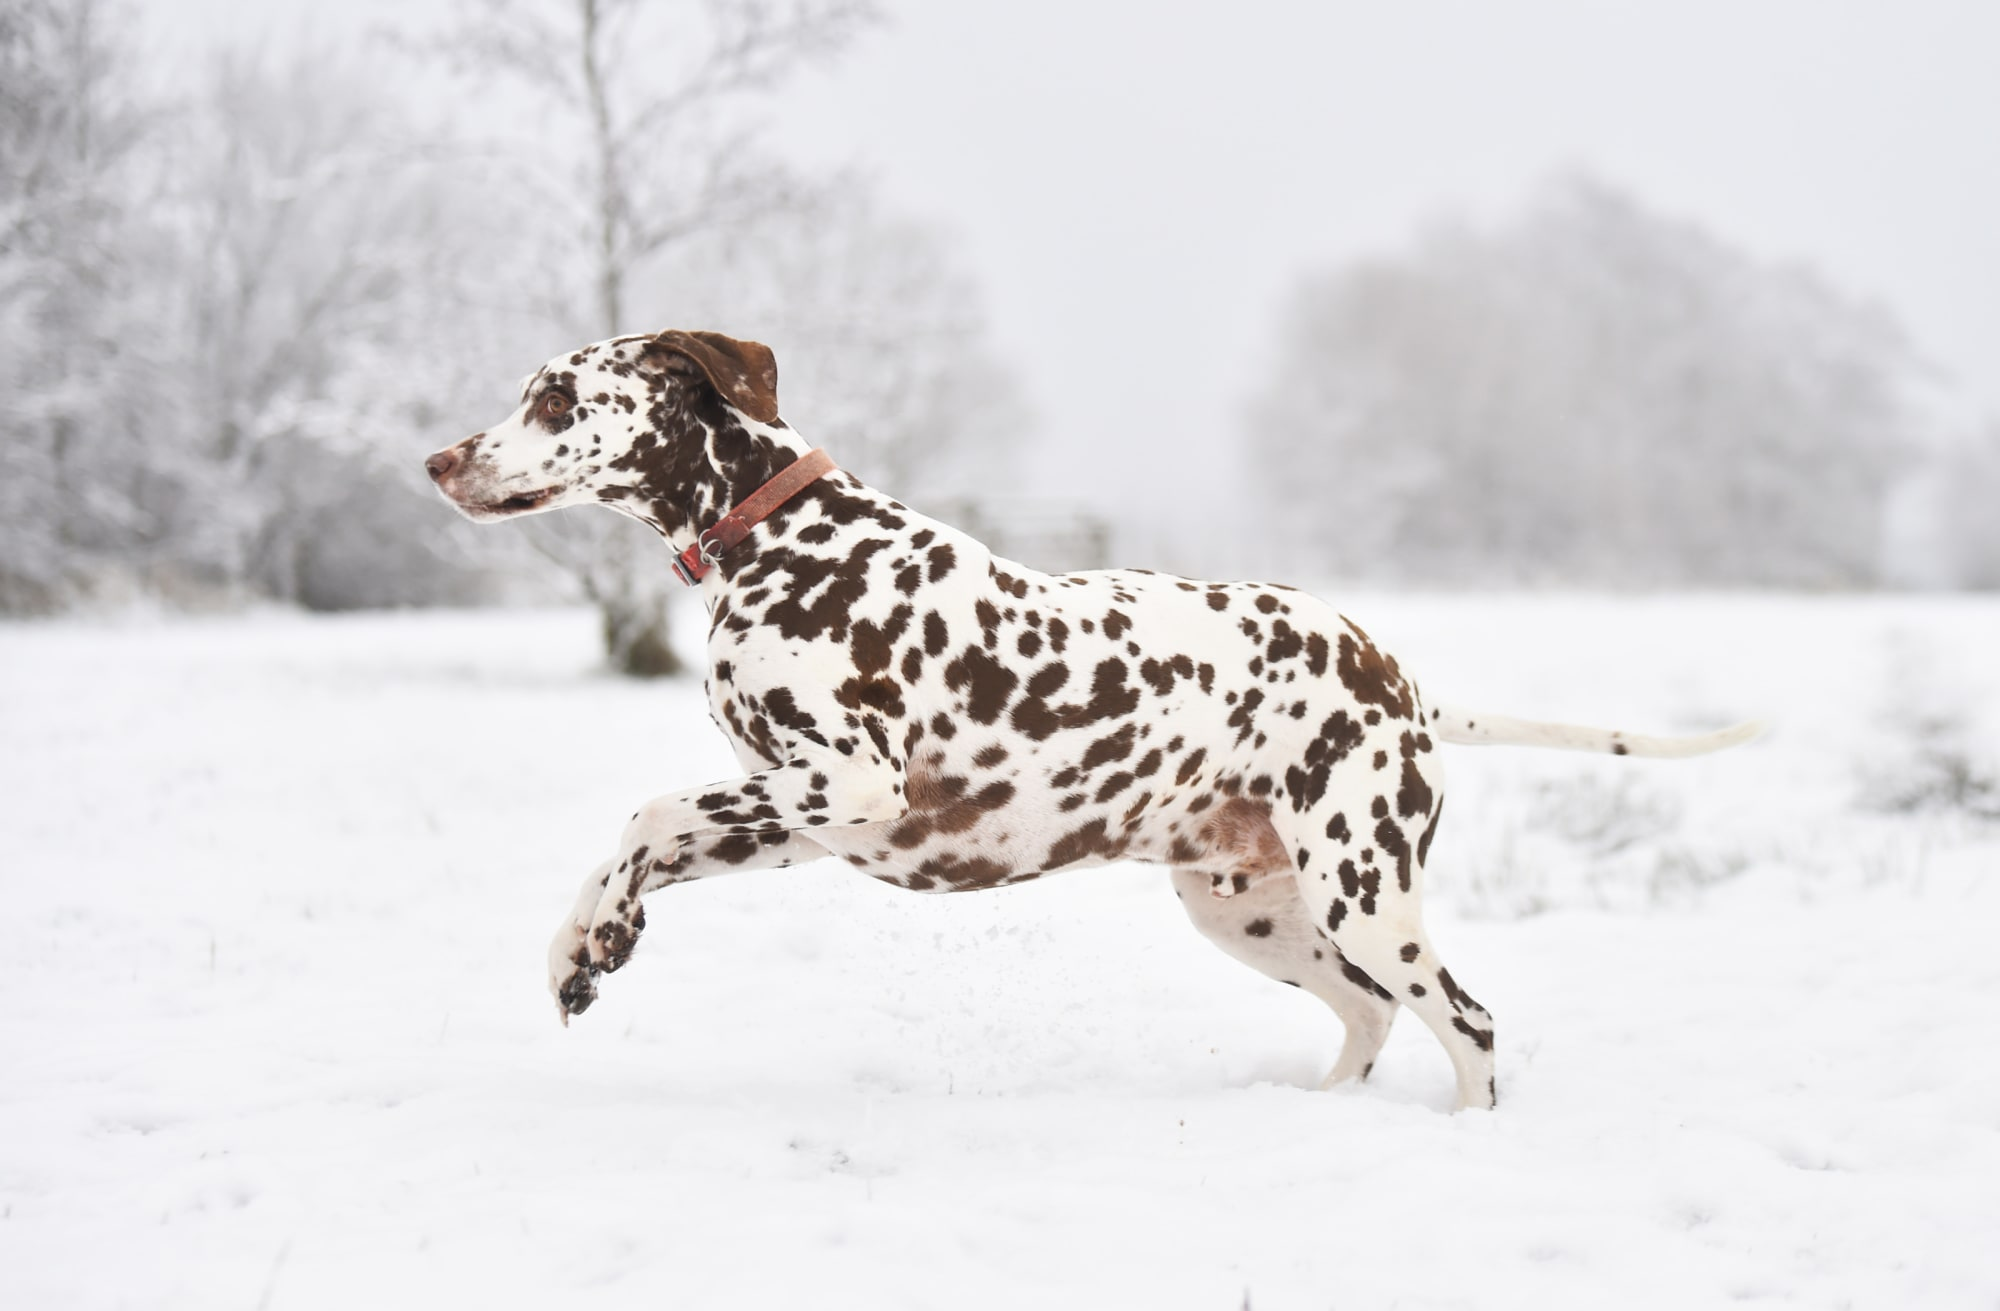 The cutest dog breeds according to science